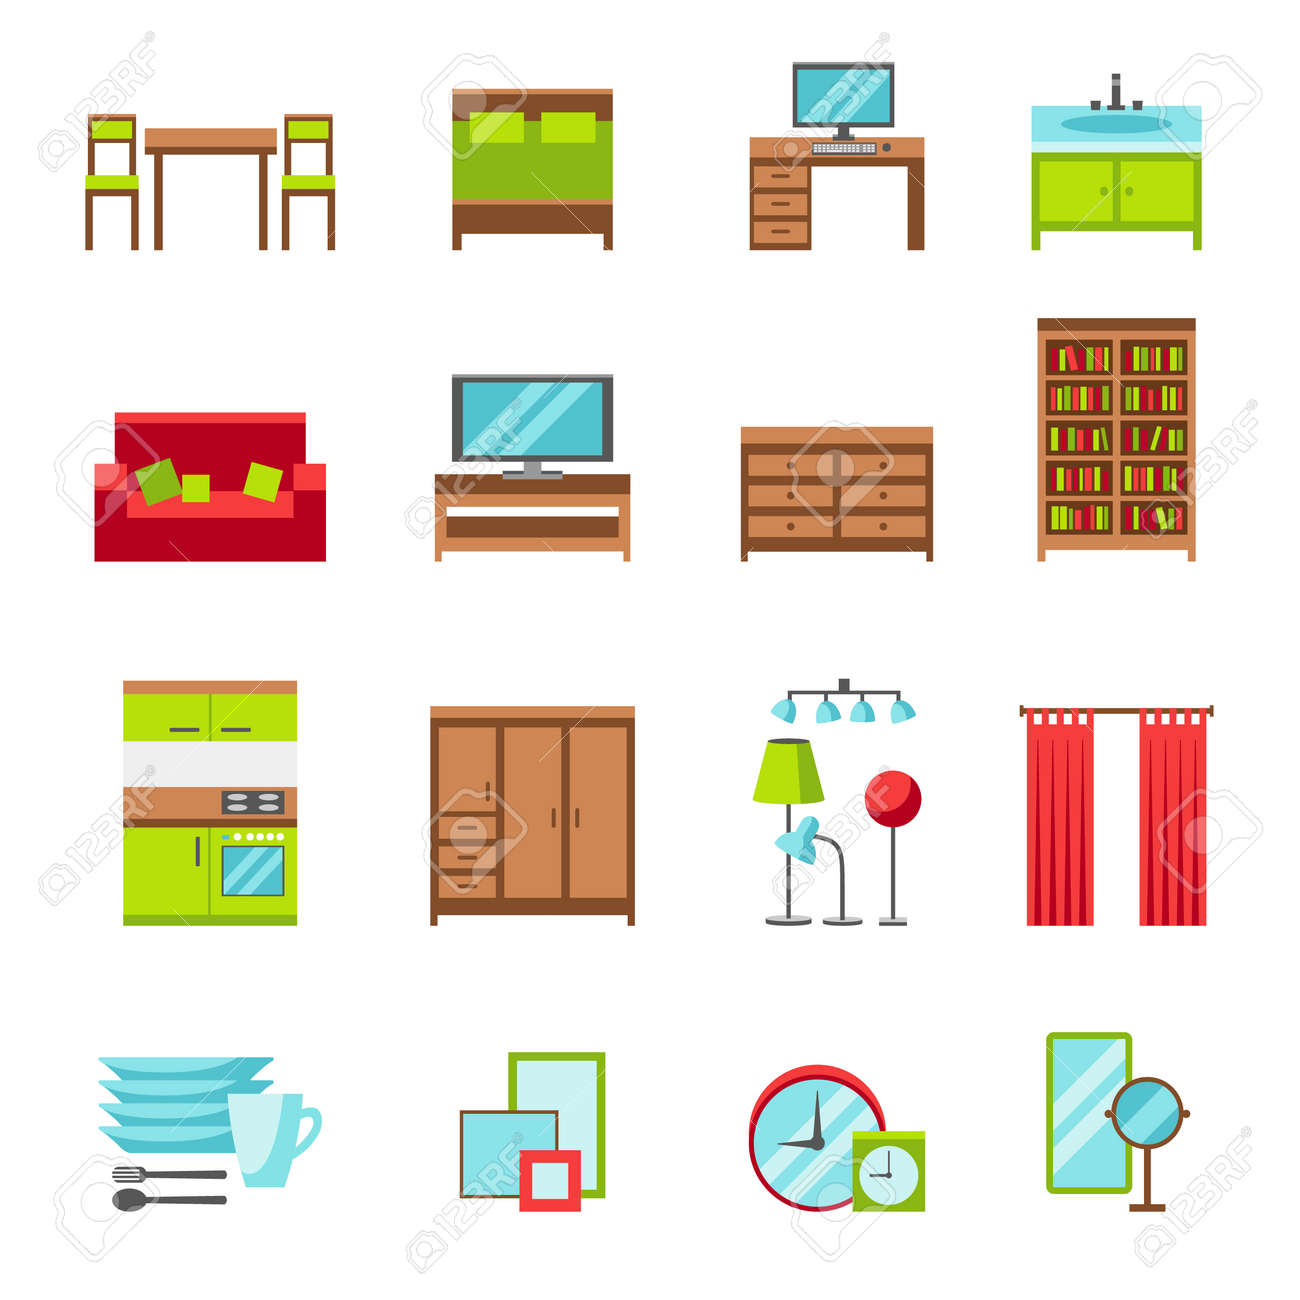 furniture icons set flat style vector illustration furniture royalty free cliparts vectors and stock illustration image 61230866